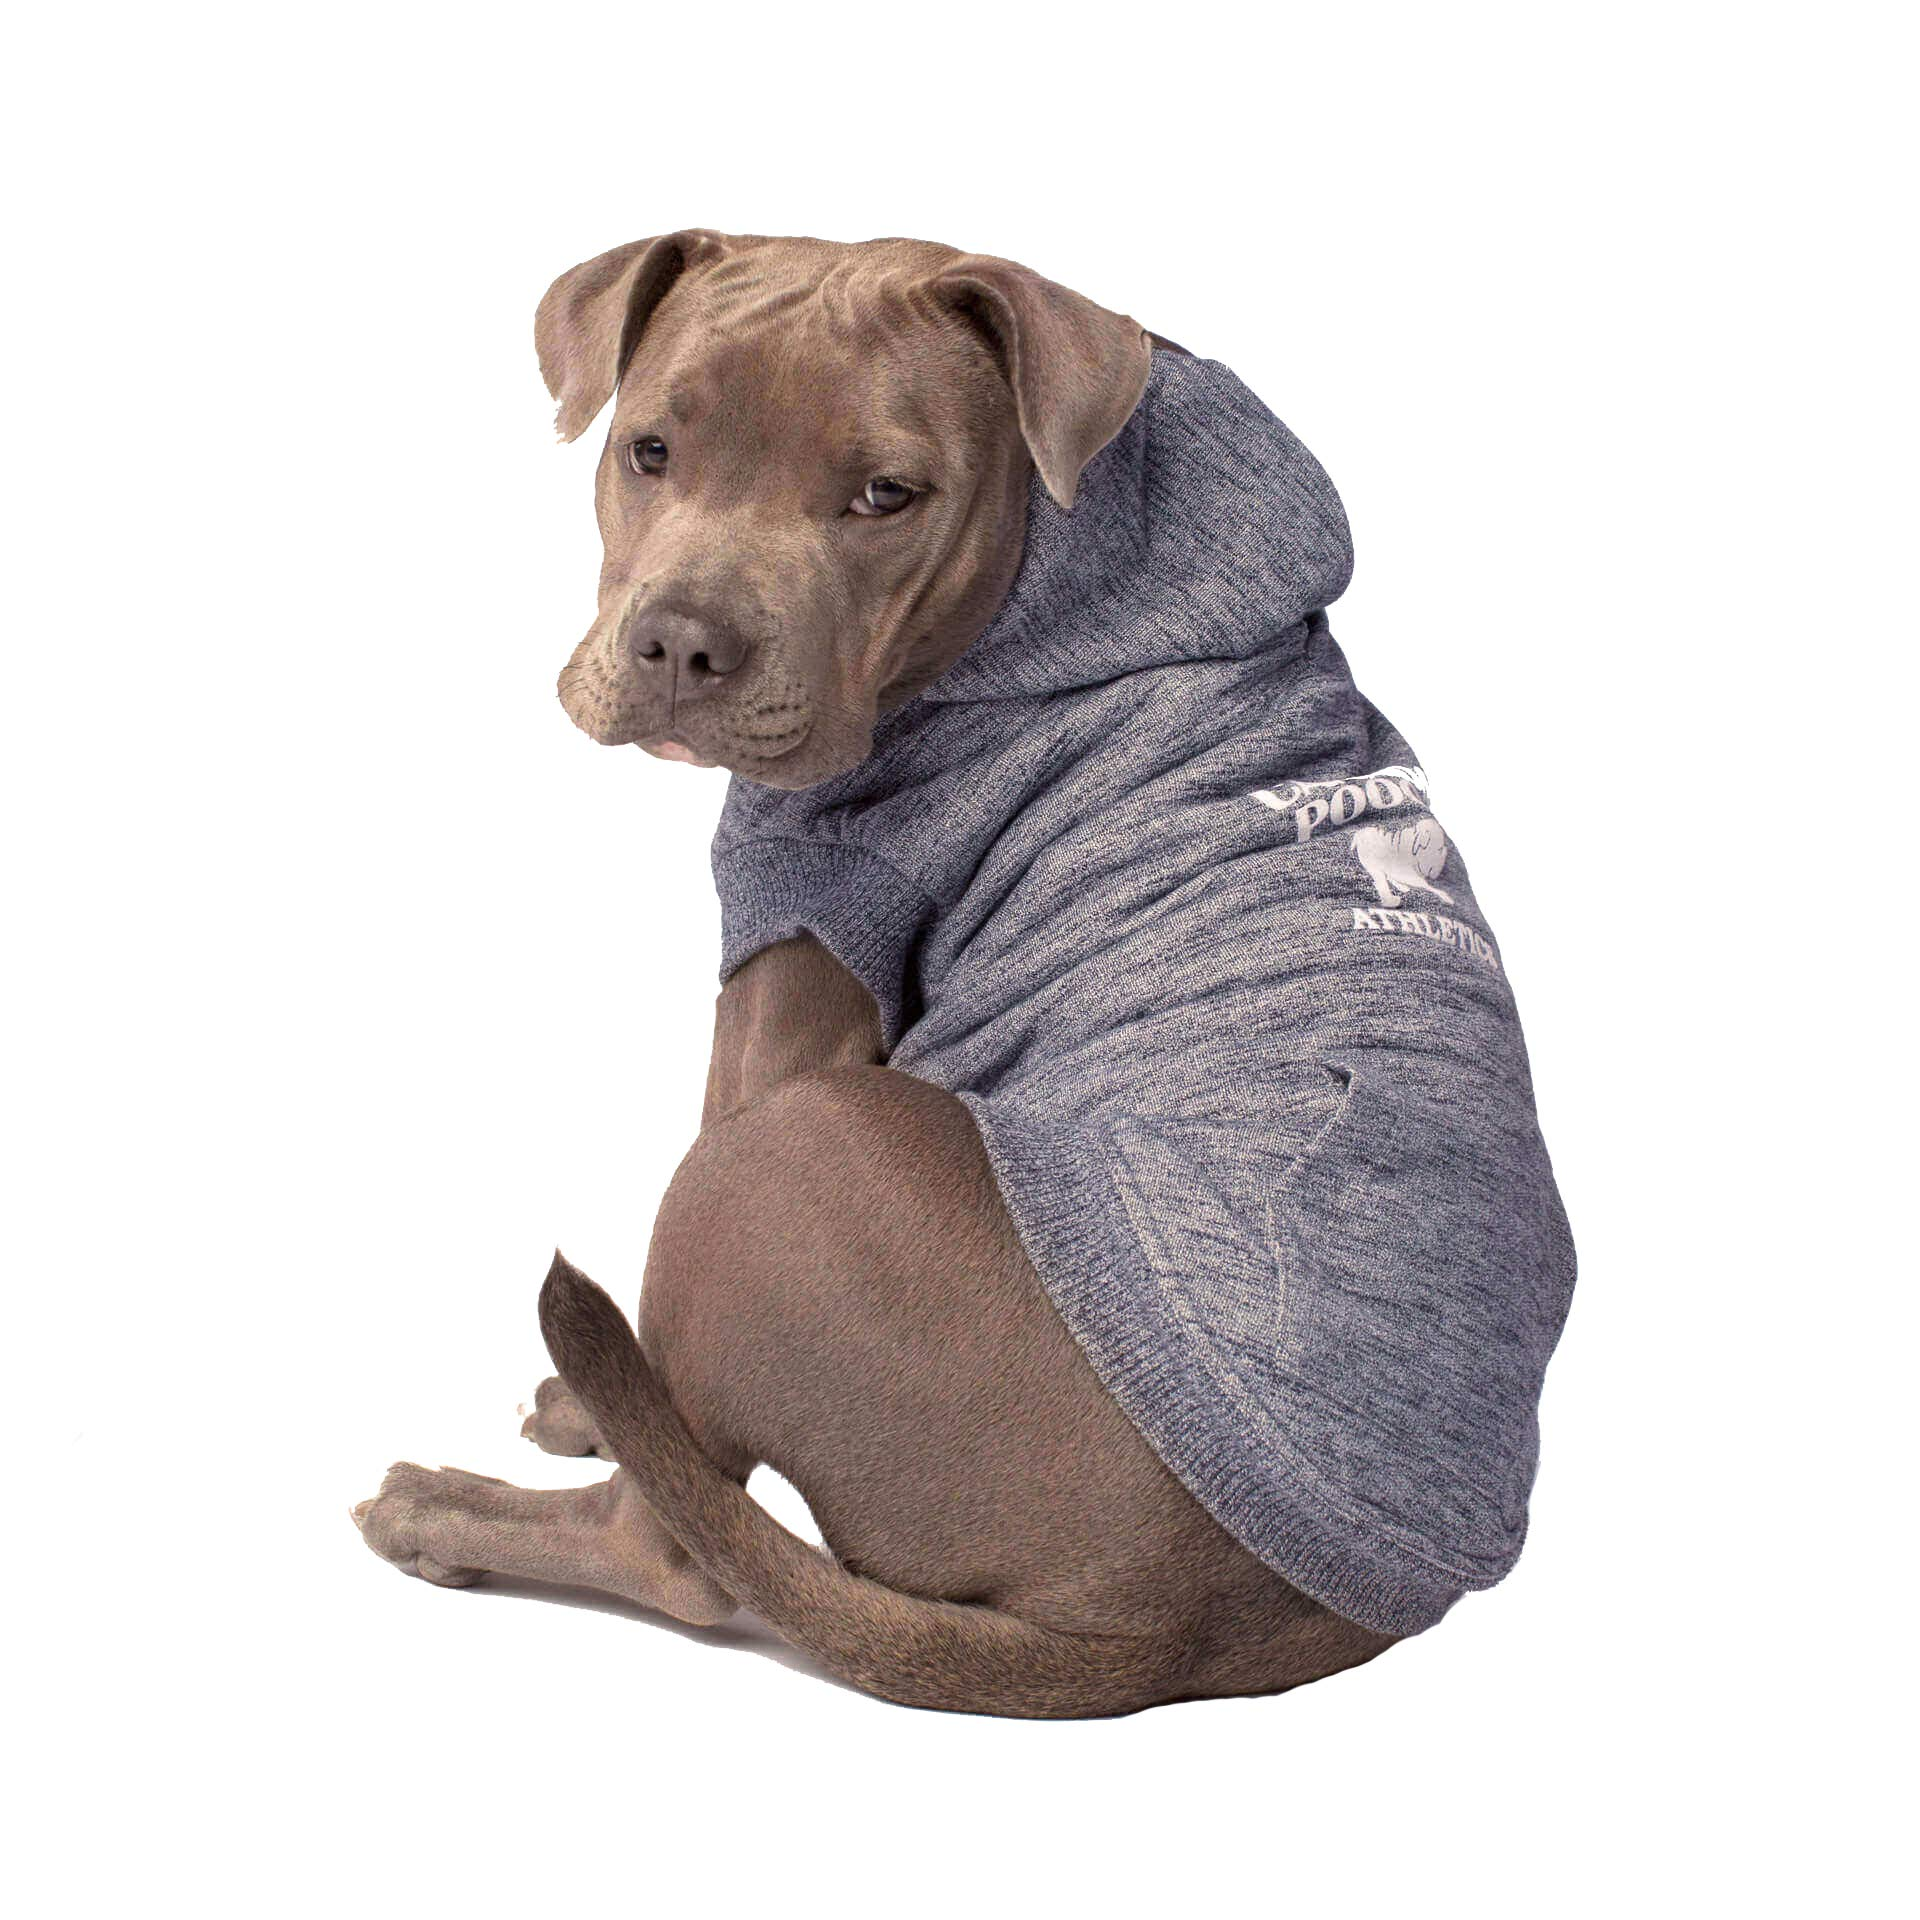 Canada Pooch Cozy Caribou Sherpa Lined Fleece Dog Hoodie, Charcoal, Size 28